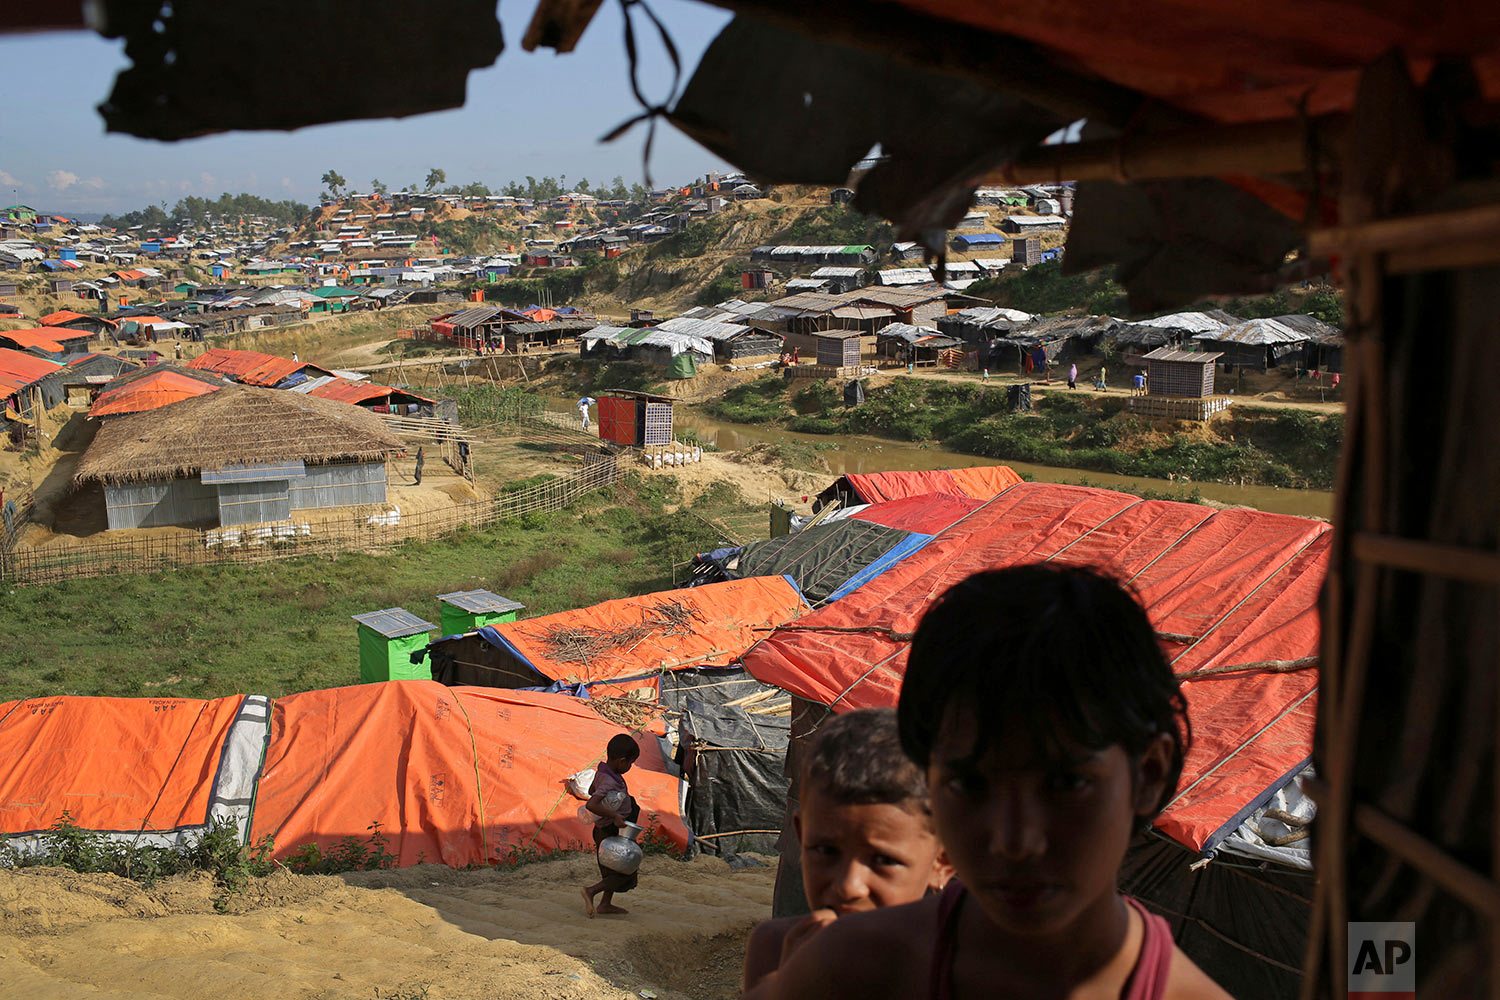 In this Sunday, Nov. 19, 2017, photo, Rohingya children stand in the shade of a tent in Kutupalong refugee camp in Bangladesh. (AP Photo/Wong Maye-E)